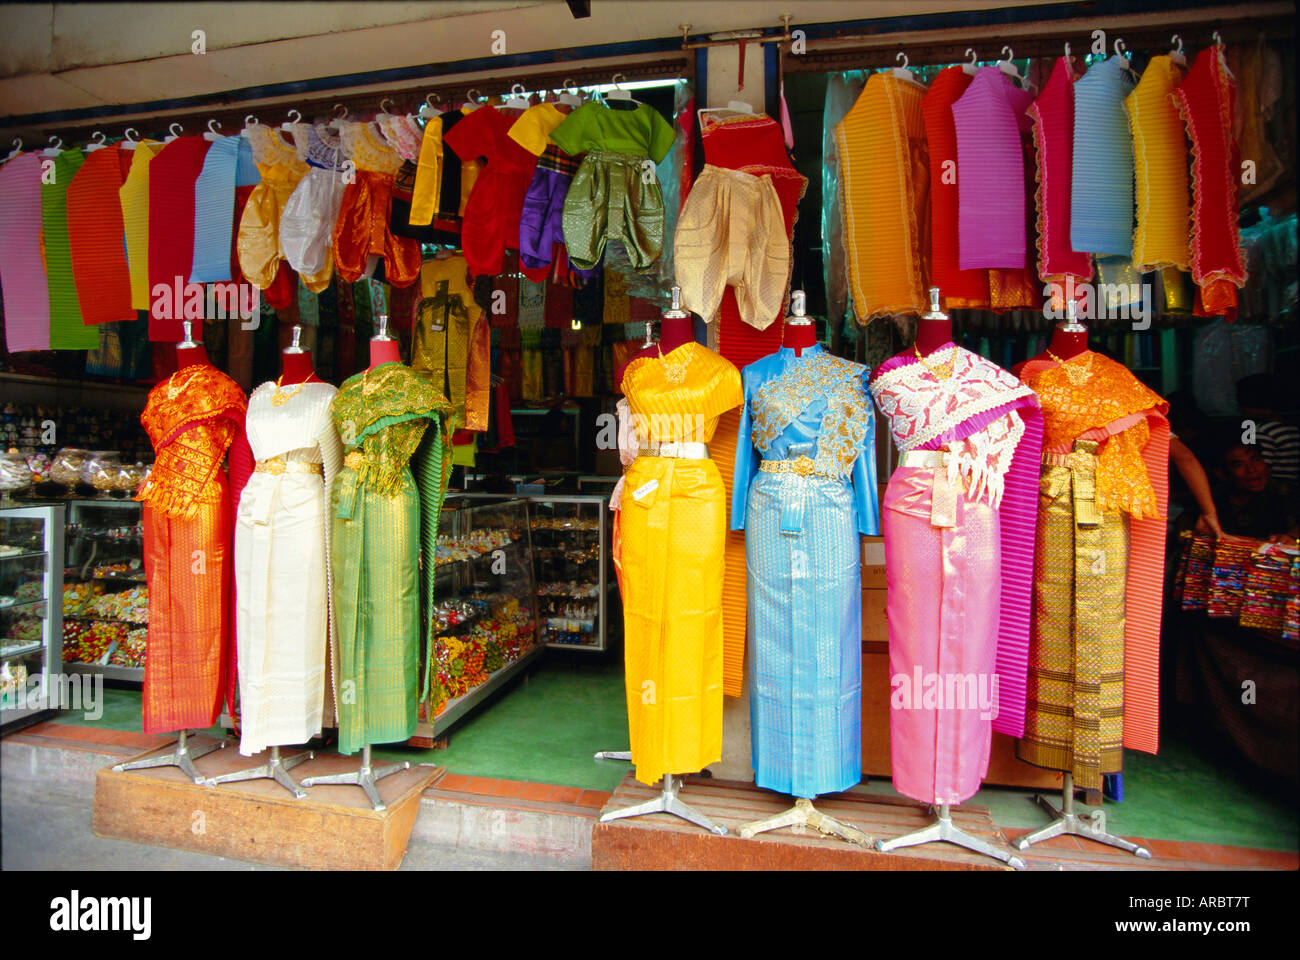 Asia shopping online clothes